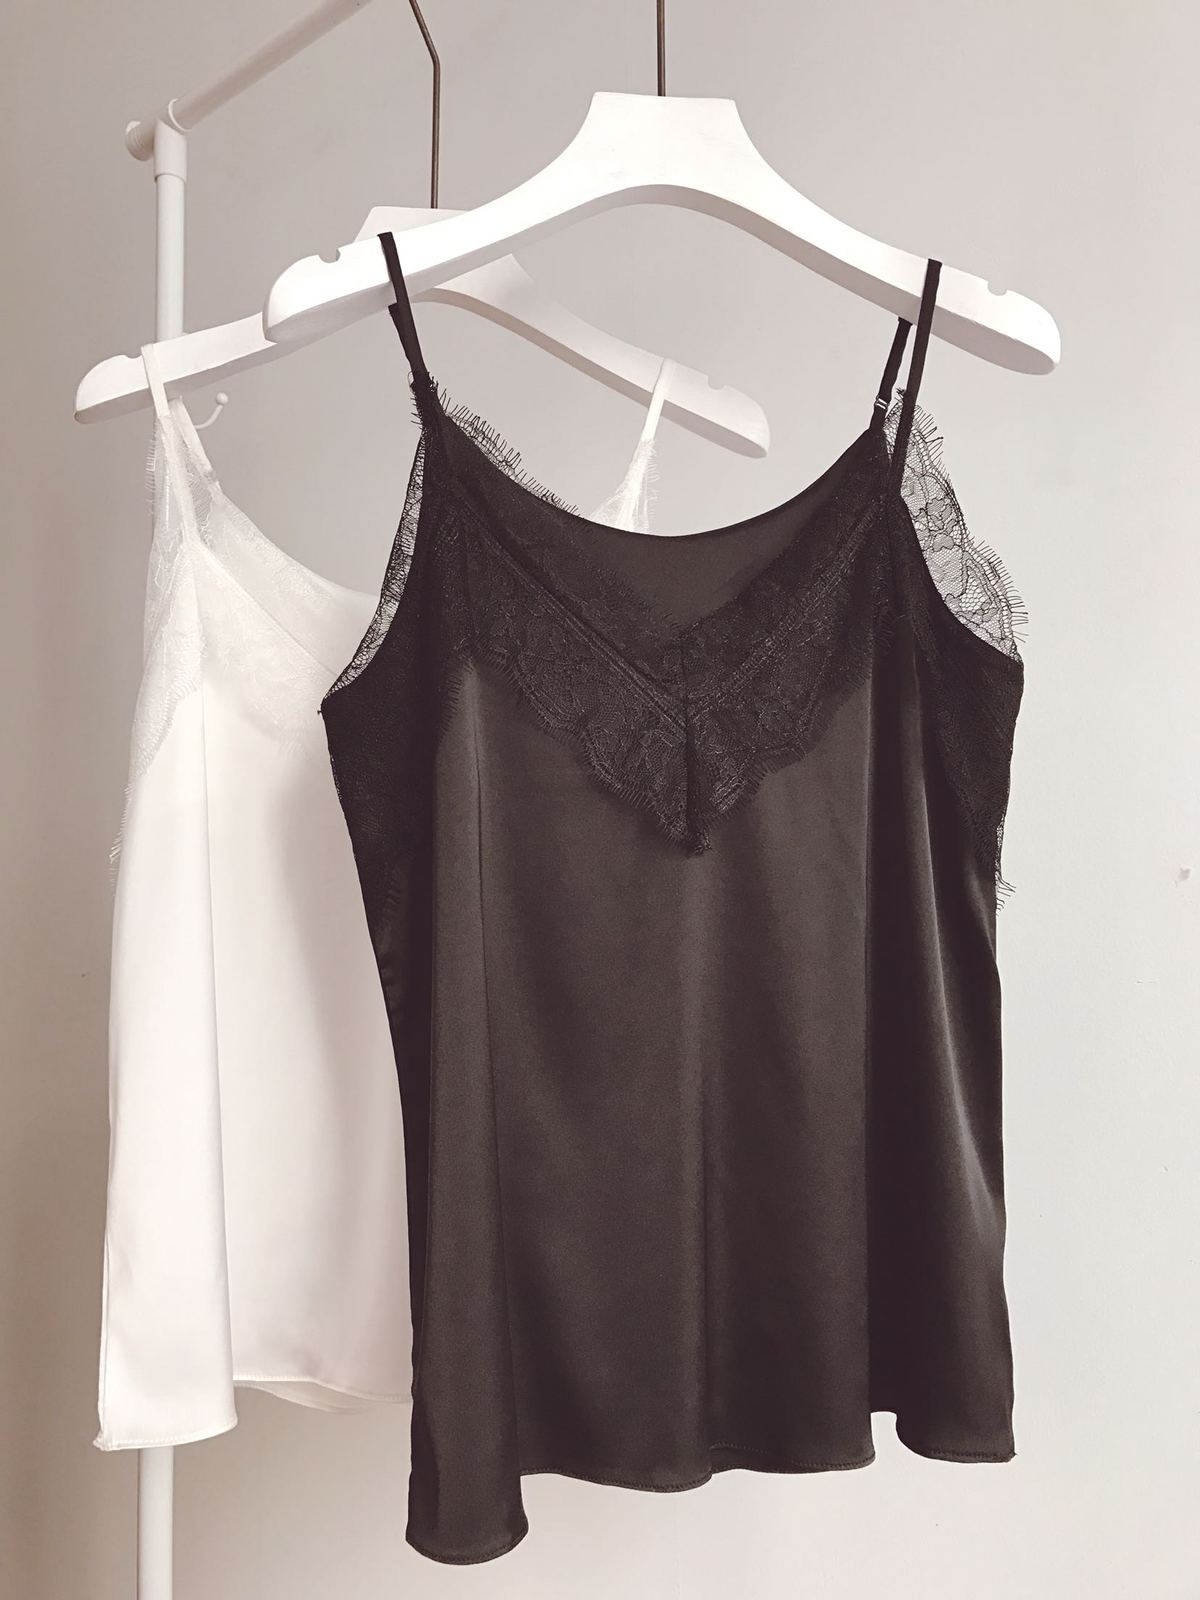 Black Sleeveless Chiffon Lace Top Summer Chiffon Tank Bridesmaid Lace Top Blouse